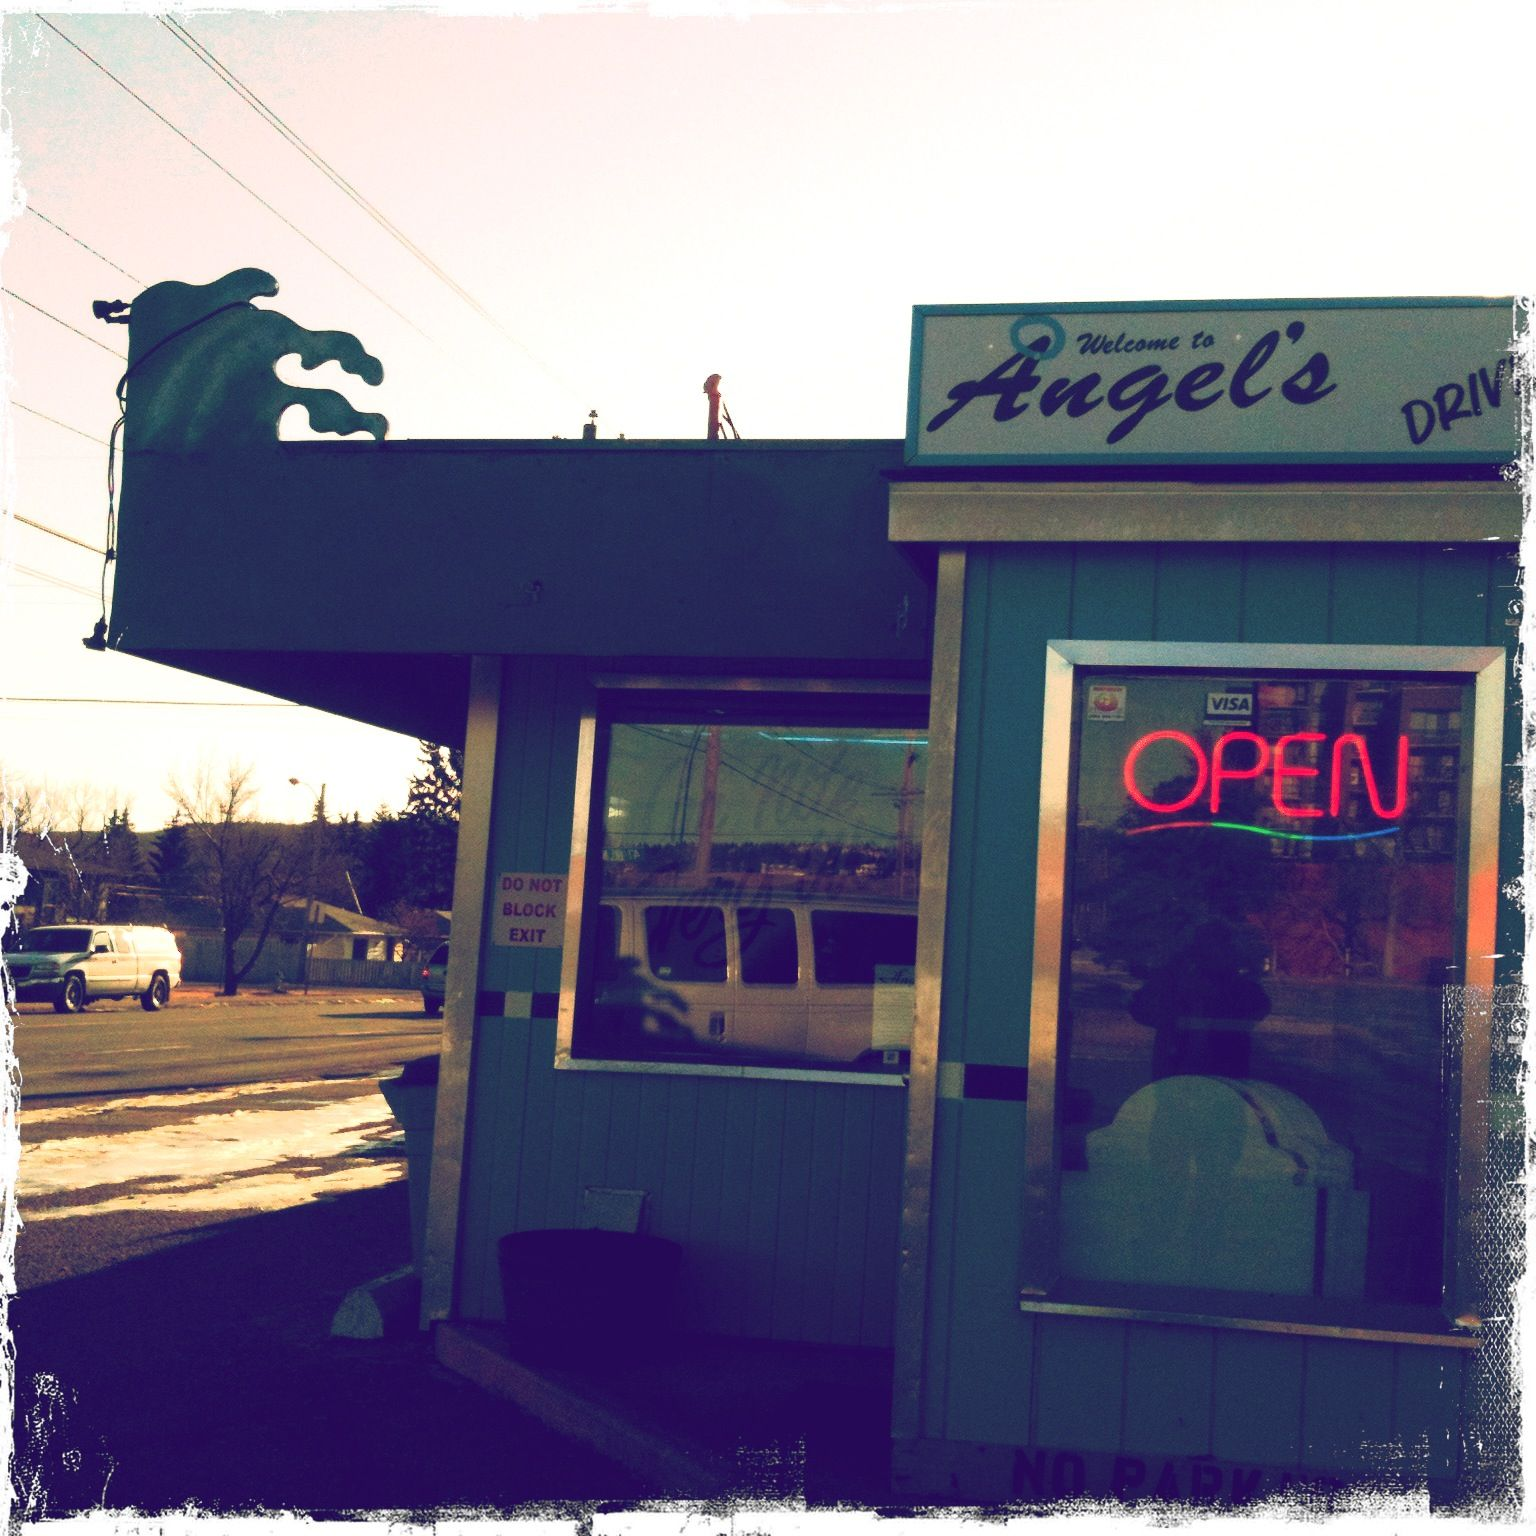 Angel's Drive Inn in Bowness - ALSO: RIVERBEND STATION PUB - http://www.riverbendstationpub.com/burgers-and-sandwiches.html - ALSO: PARTNERS PUB - Partners Bar & Grill Ogden #30 - 7740 18 St. SE (403) 236-3262 - MENU: http://partnerspubs.ca/our-menu/